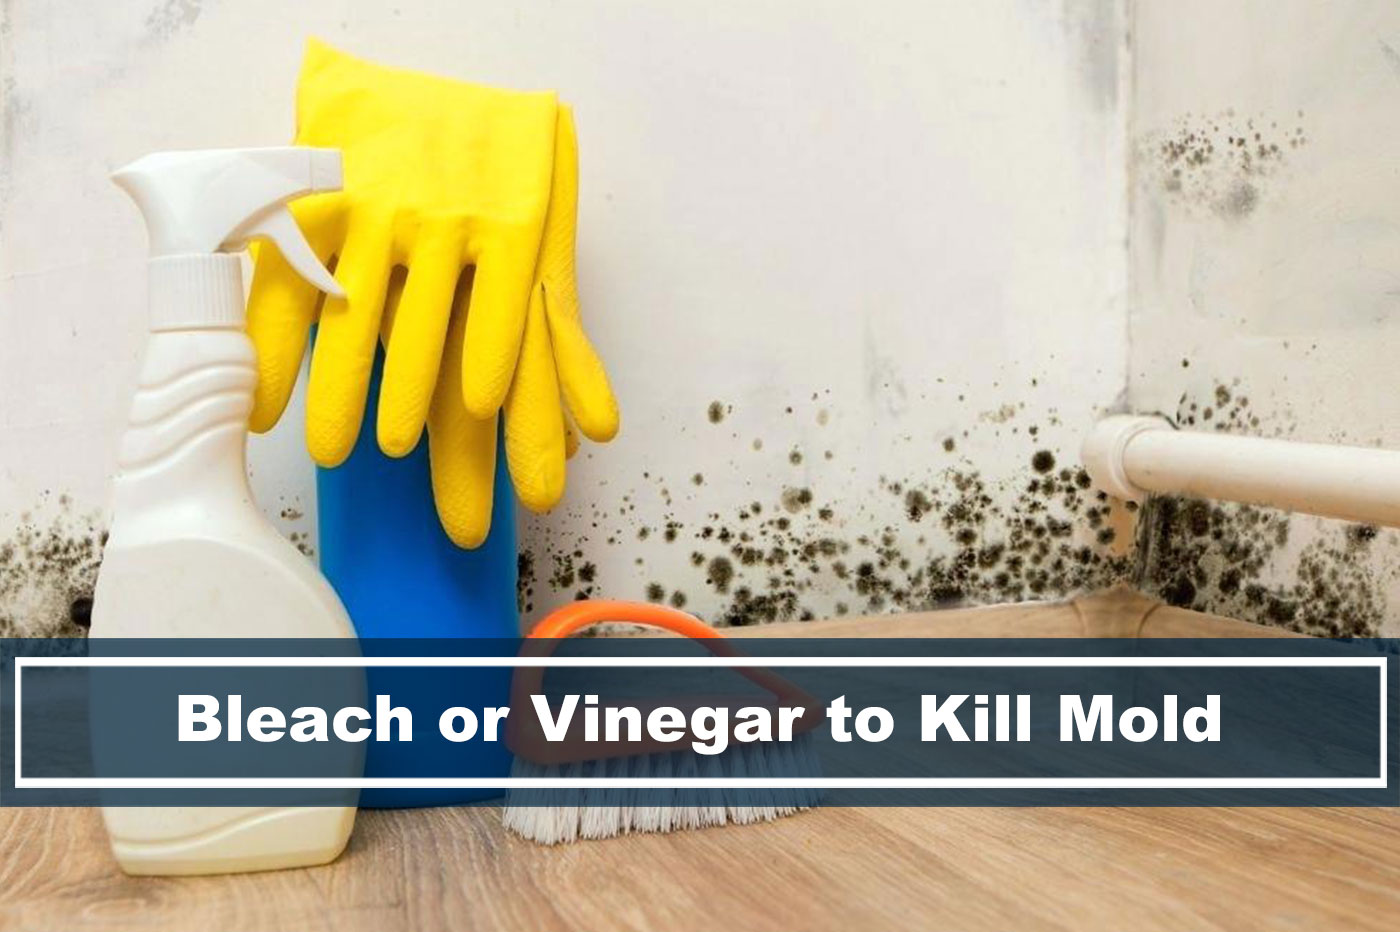 which is better? Bleach or Vinegar to killing mold?